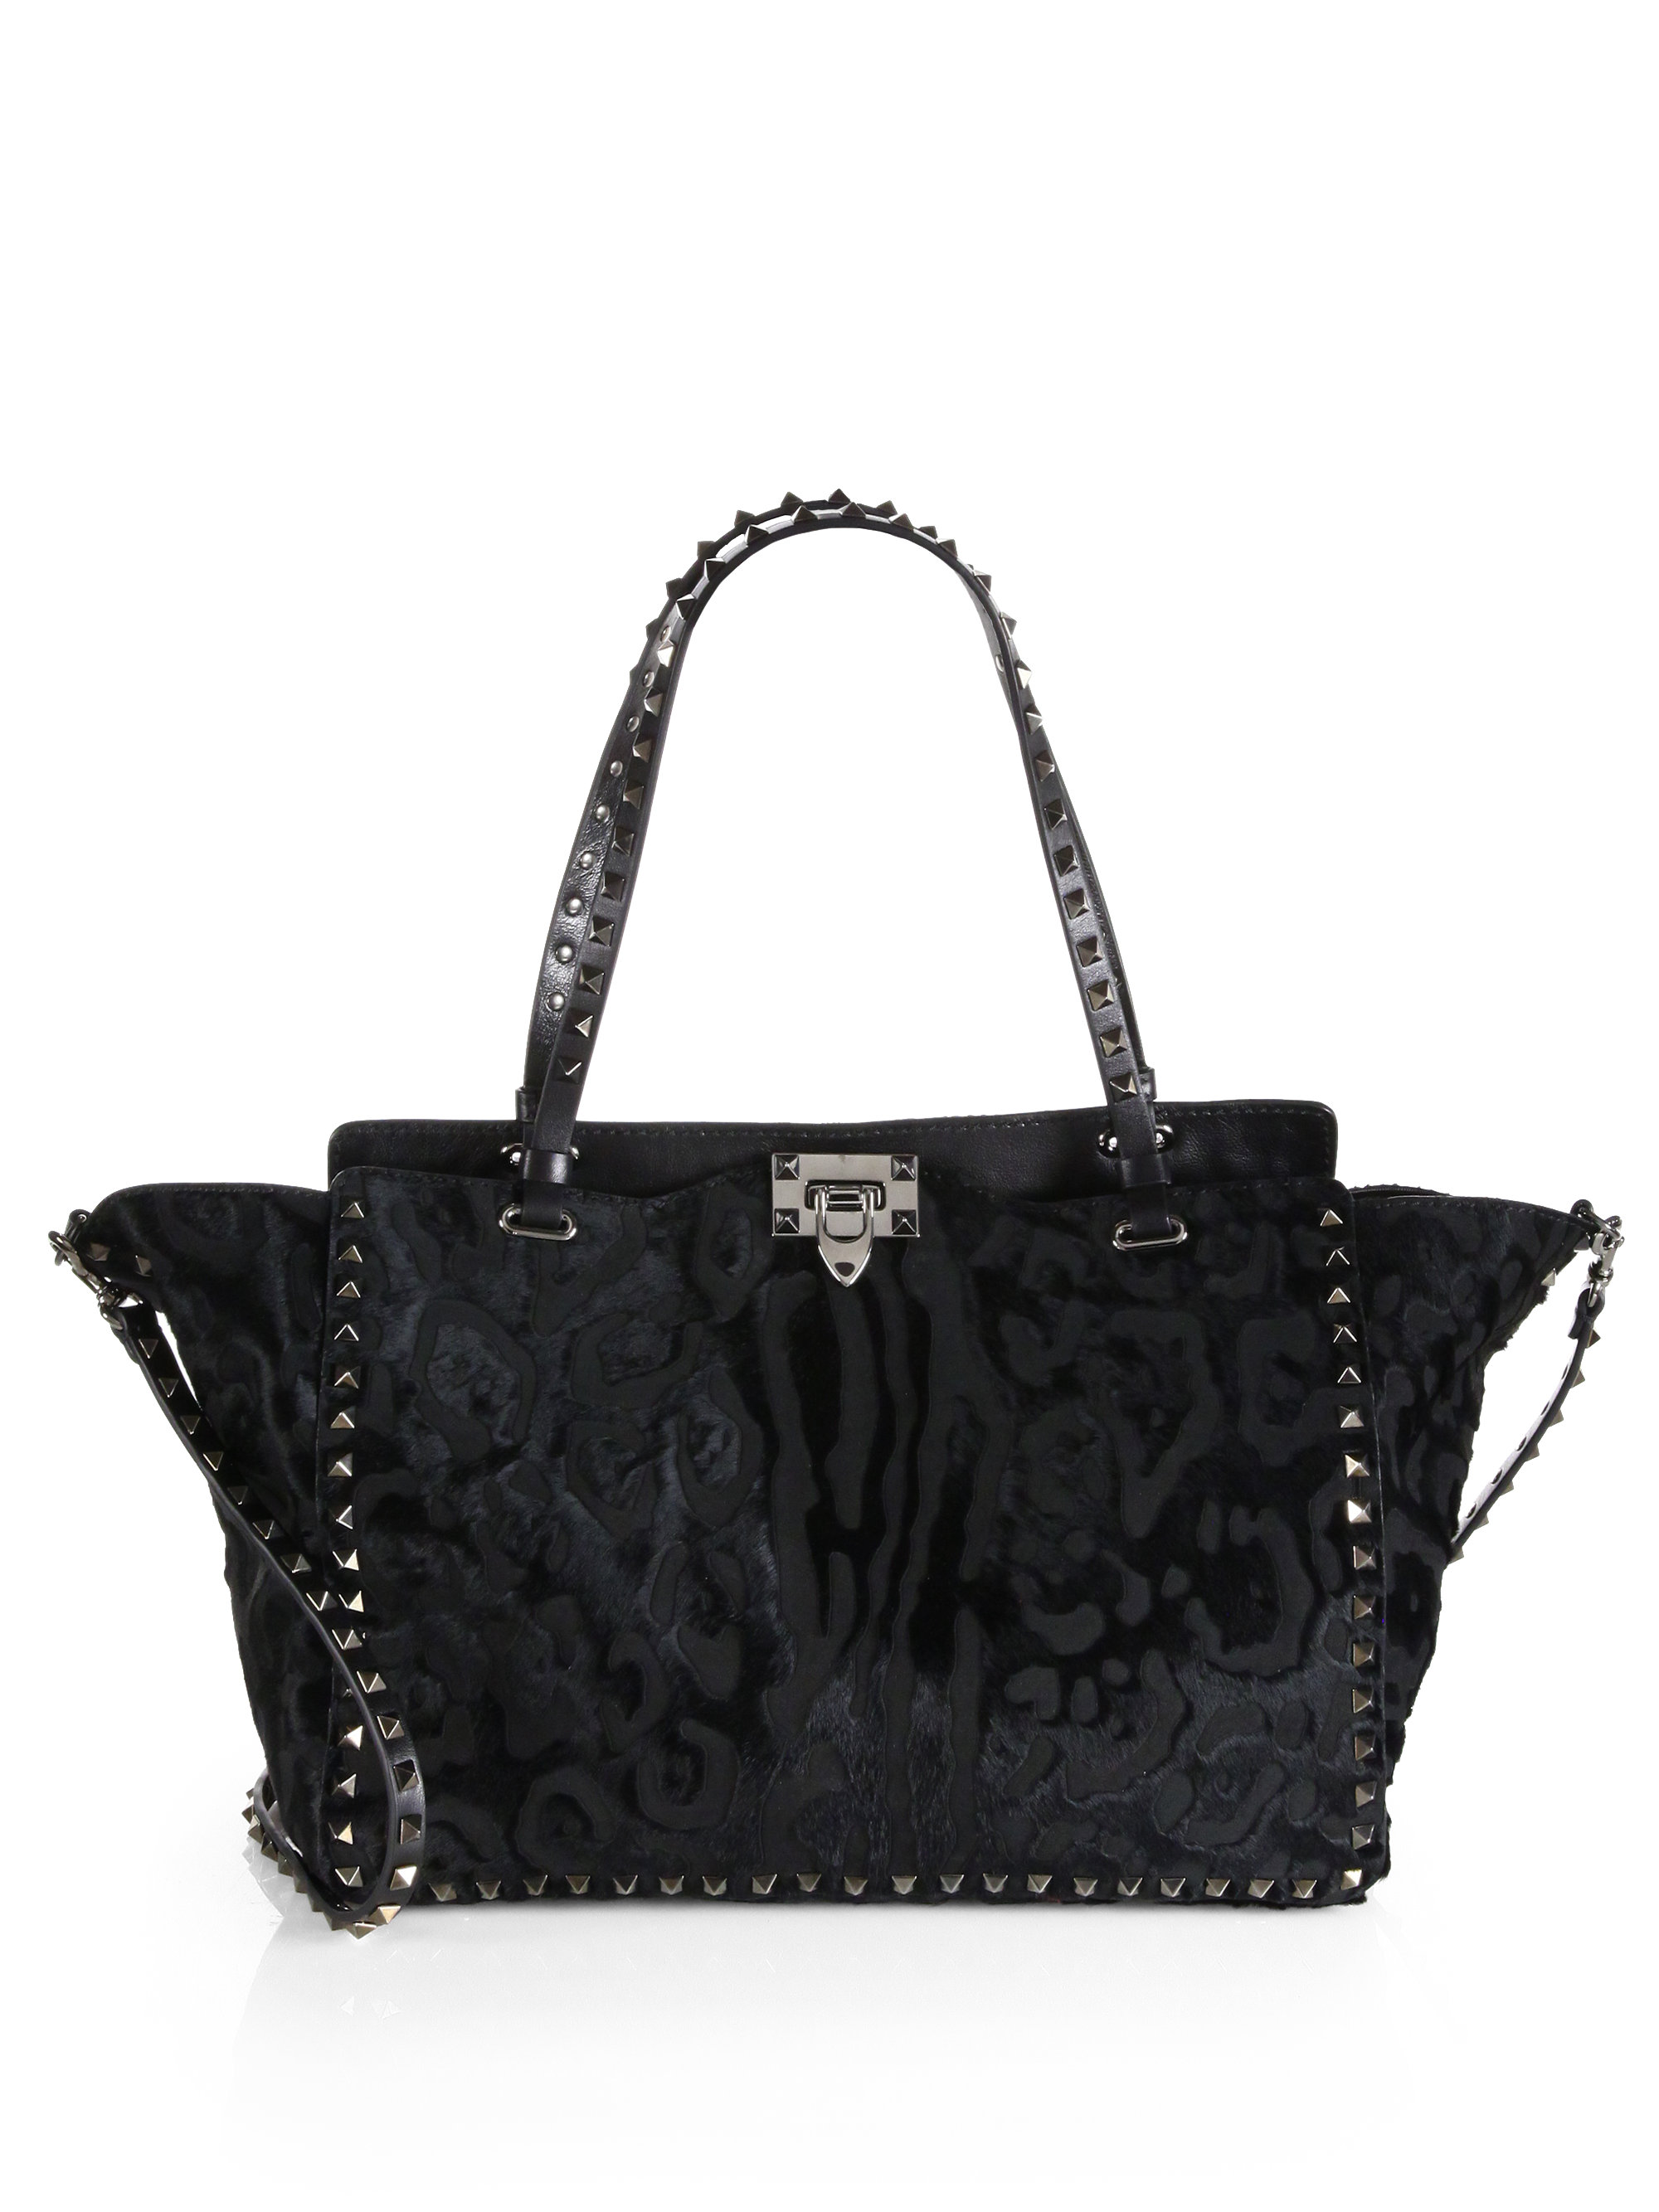 Lyst Valentino Noir Rockstud Cavino Etched Calf Hair Tote in Black